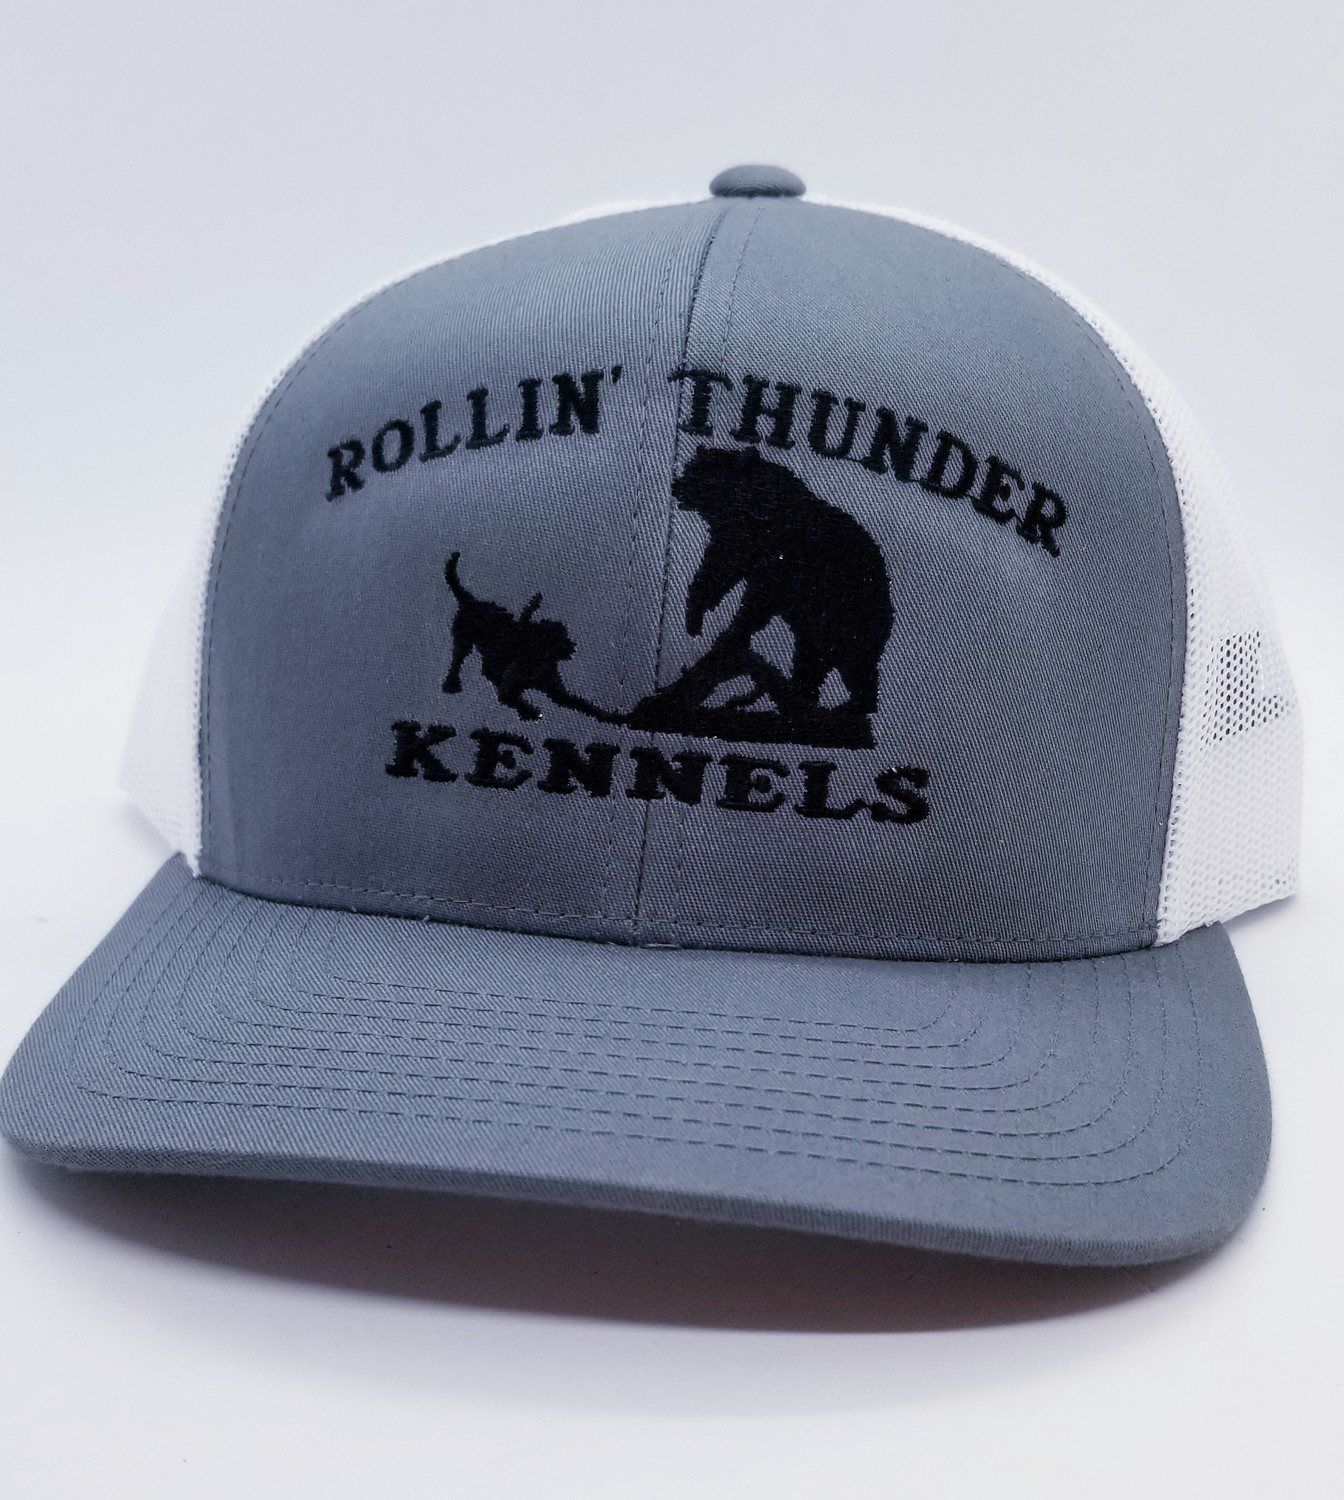 Dog Baying Bear Design Flex Fit Custom Hat - 68 Hat Colors Available!!!